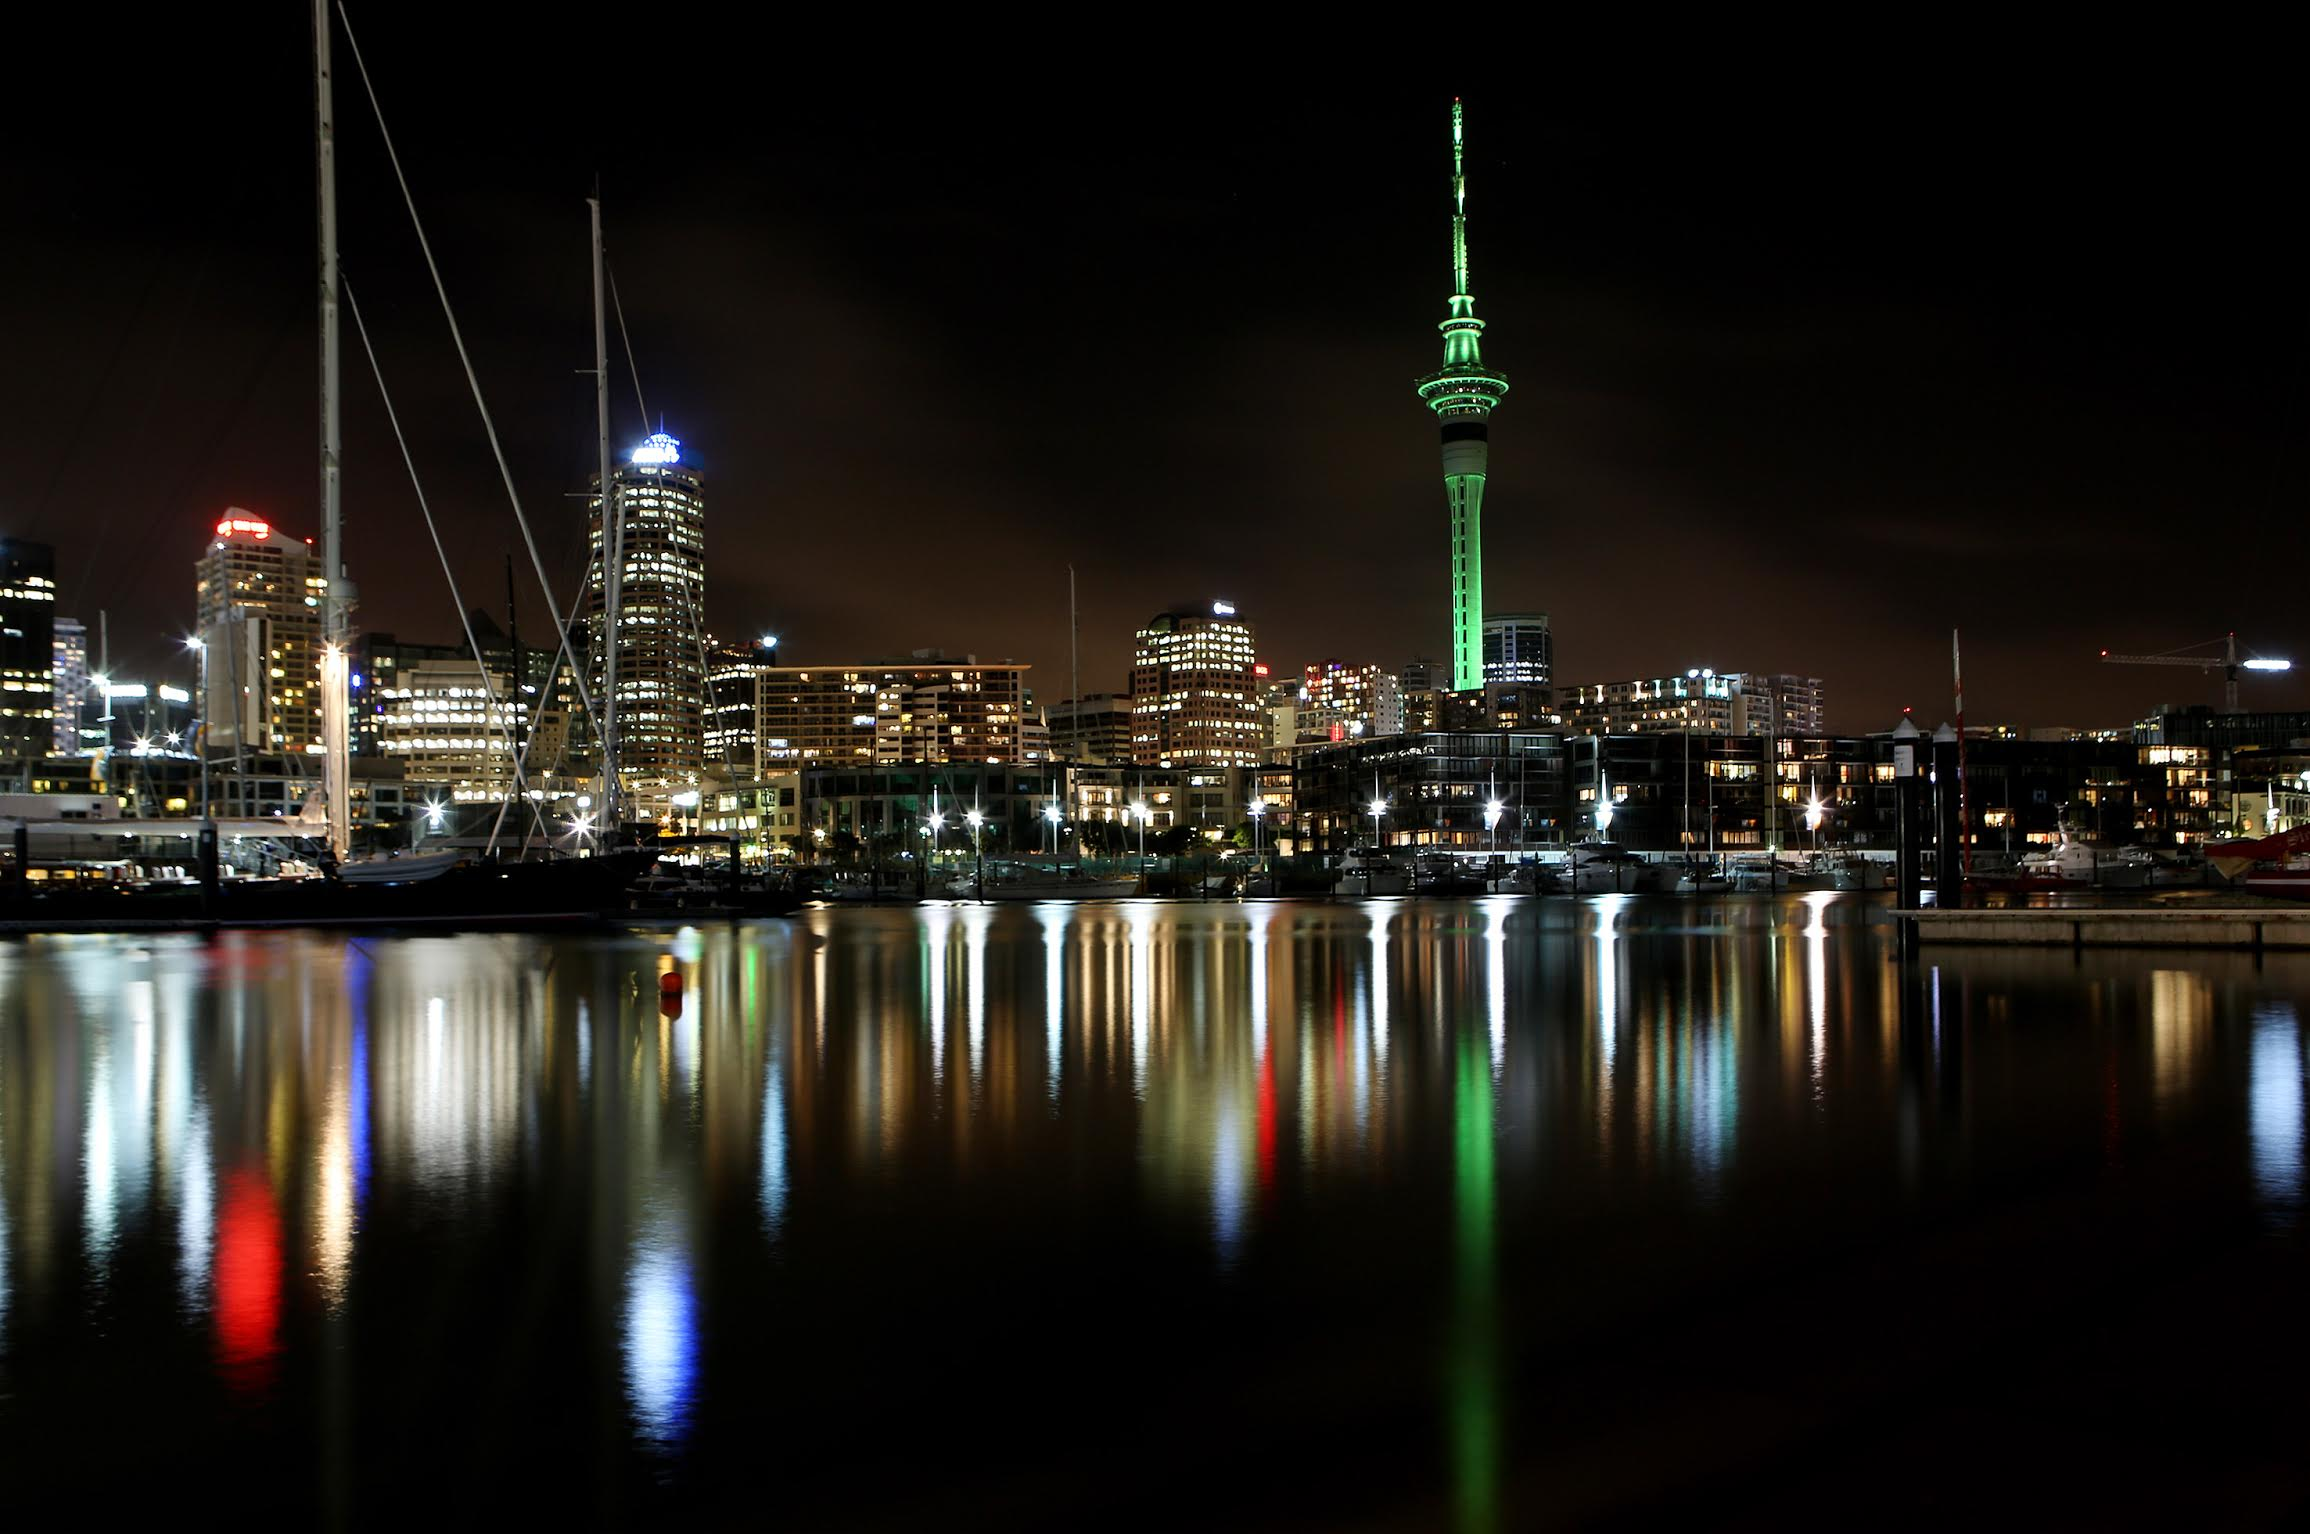 To mark the launch of the Climate Leaders Coalition, the Sky Tower will light green.